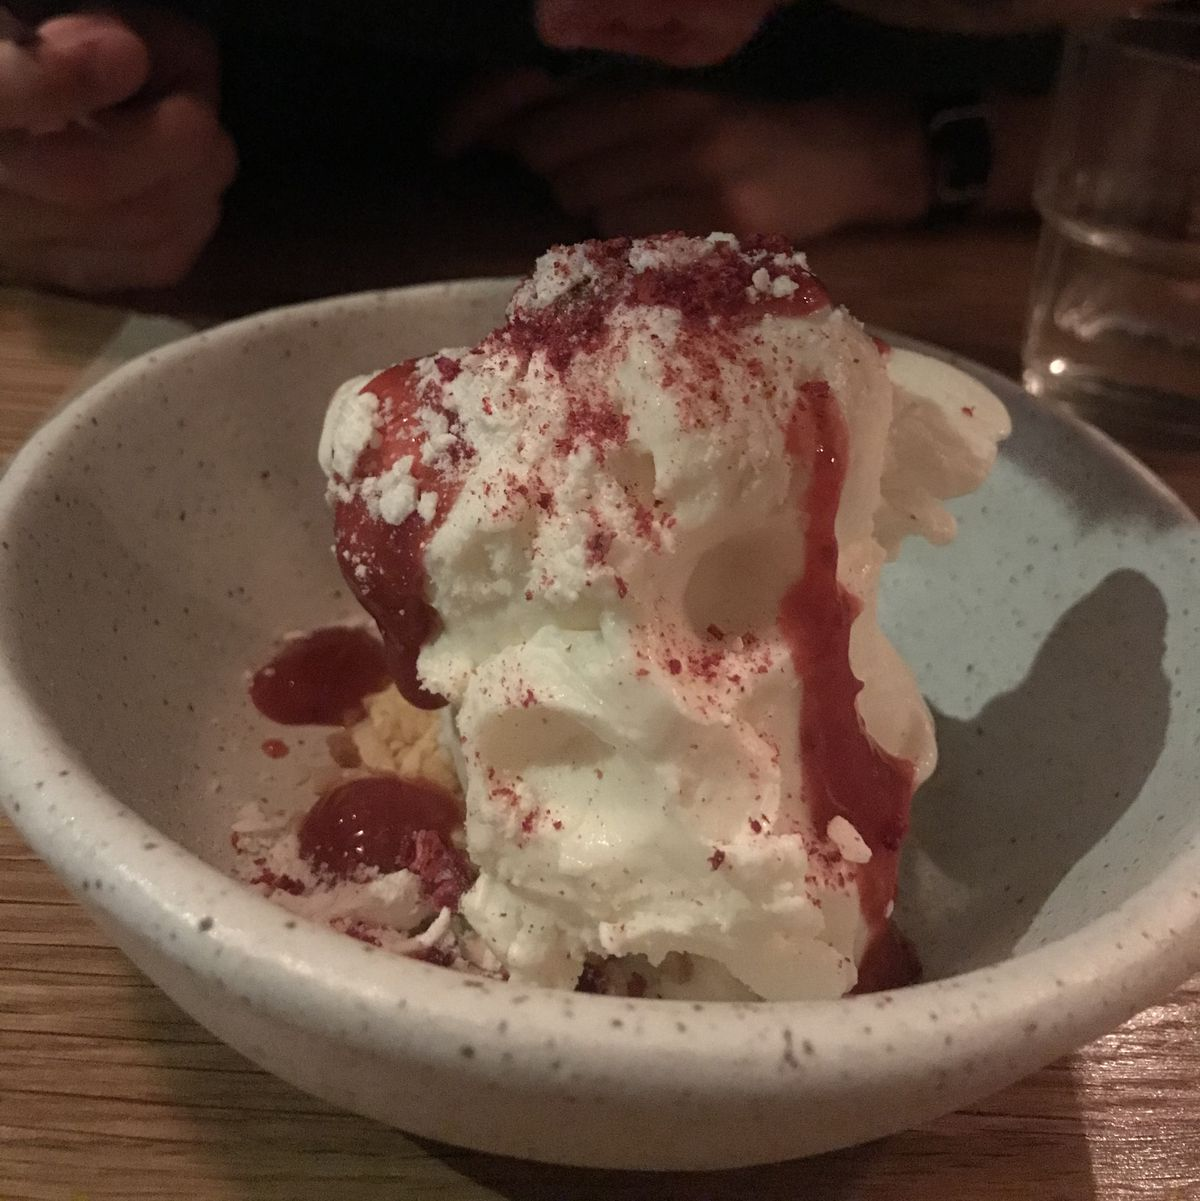 A scoop of mascarpone gelato is topped with berries in a speckled bowl